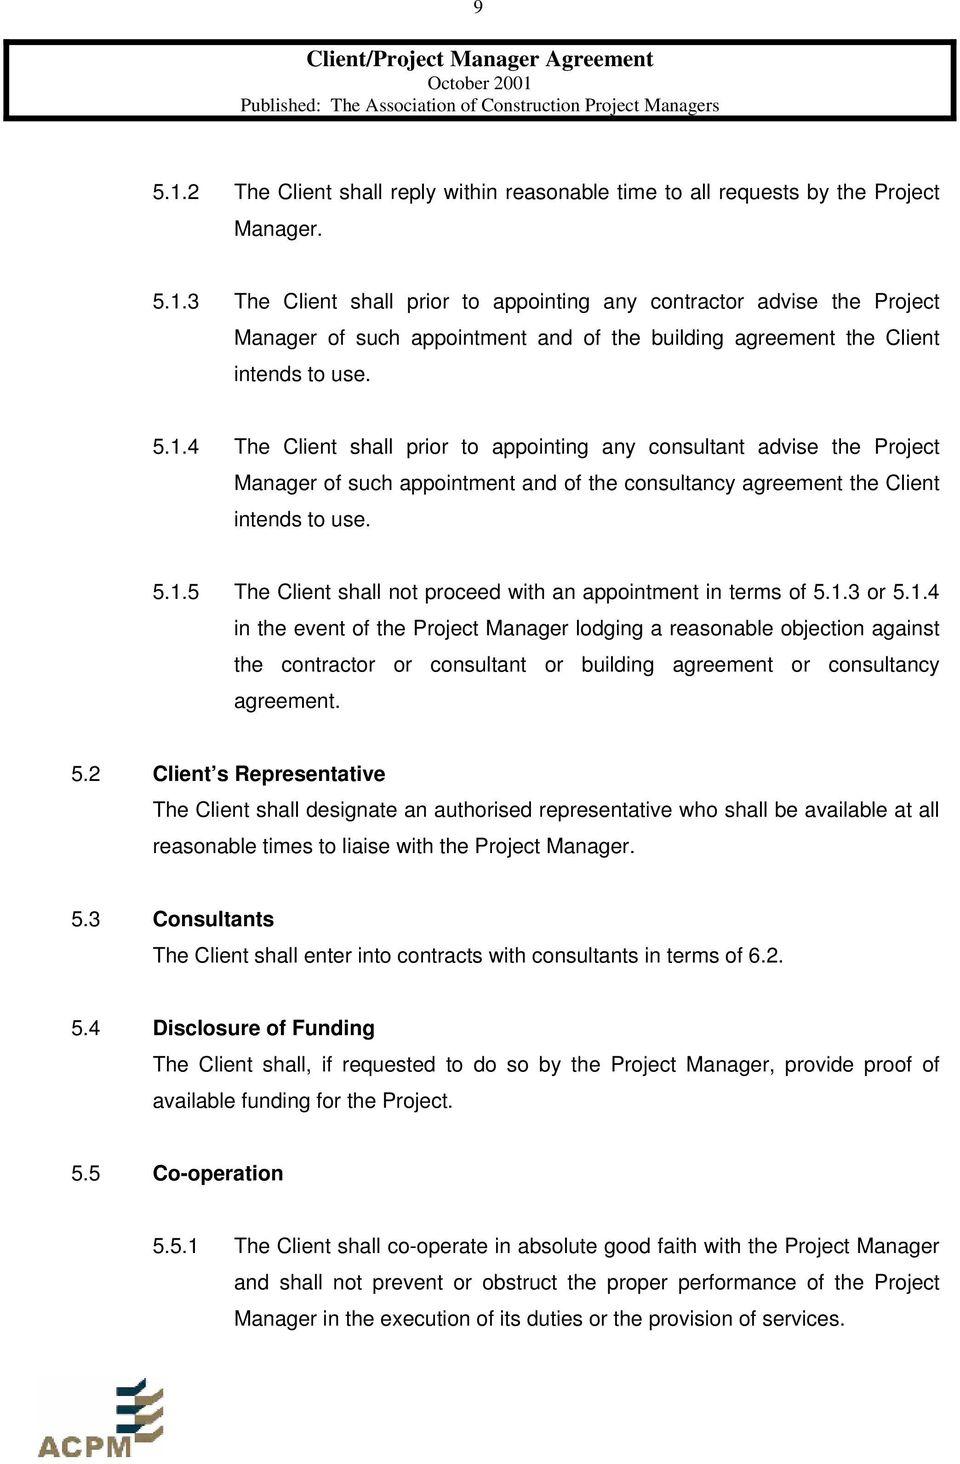 1.3 or 5.1.4 in the event of the Project Manager lodging a reasonable objection against the contractor or consultant or building agreement or consultancy agreement. 5.2 Client s Representative The Client shall designate an authorised representative who shall be available at all reasonable times to liaise with the Project Manager.